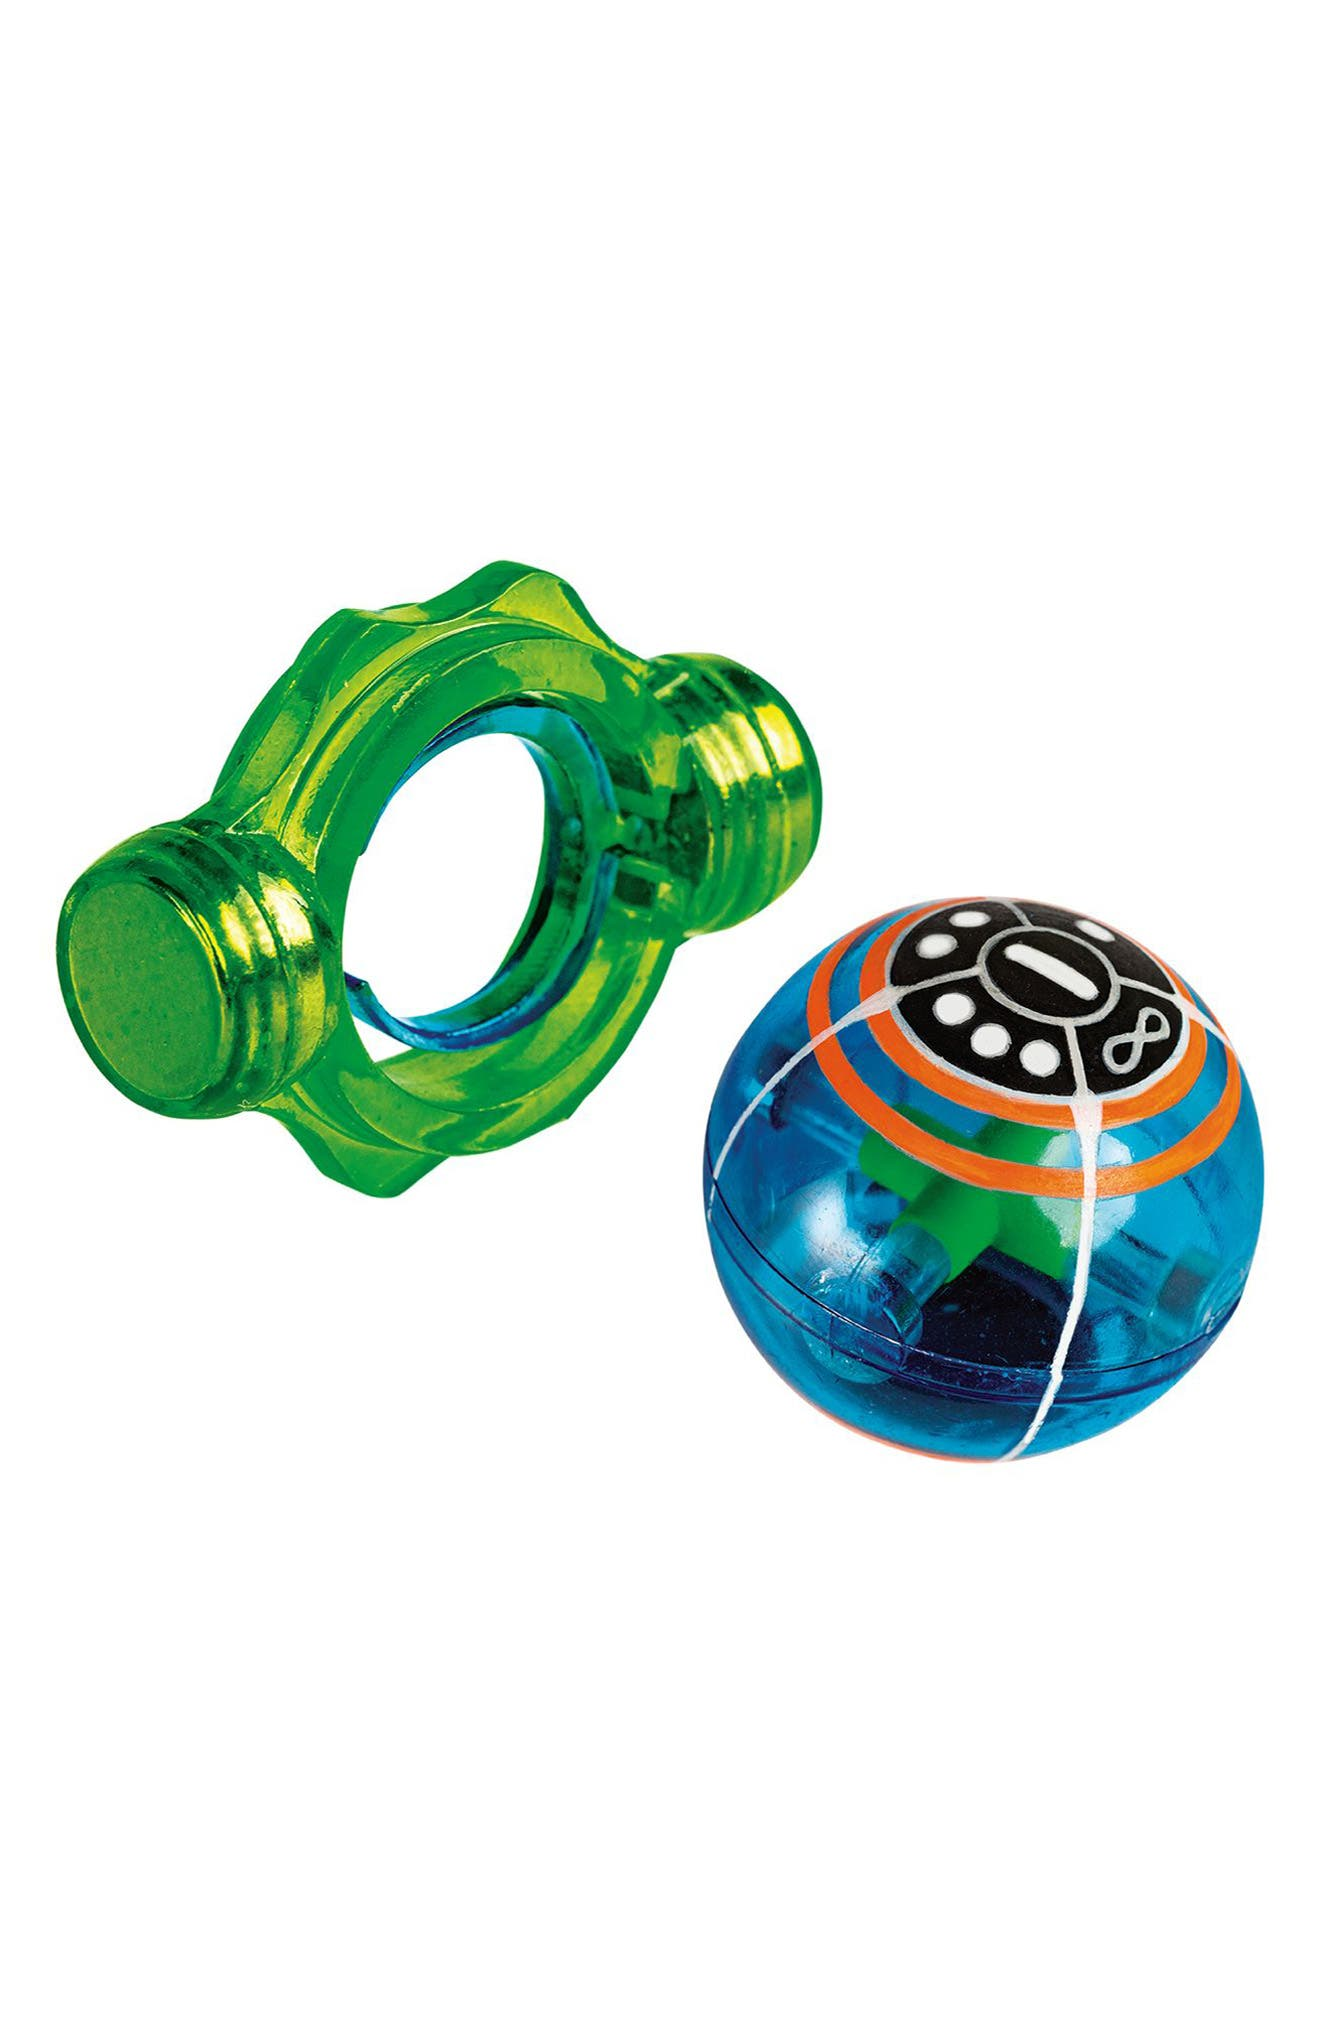 Spinos Solo 2-Piece Magnetic Spin Toy,                         Main,                         color, 400